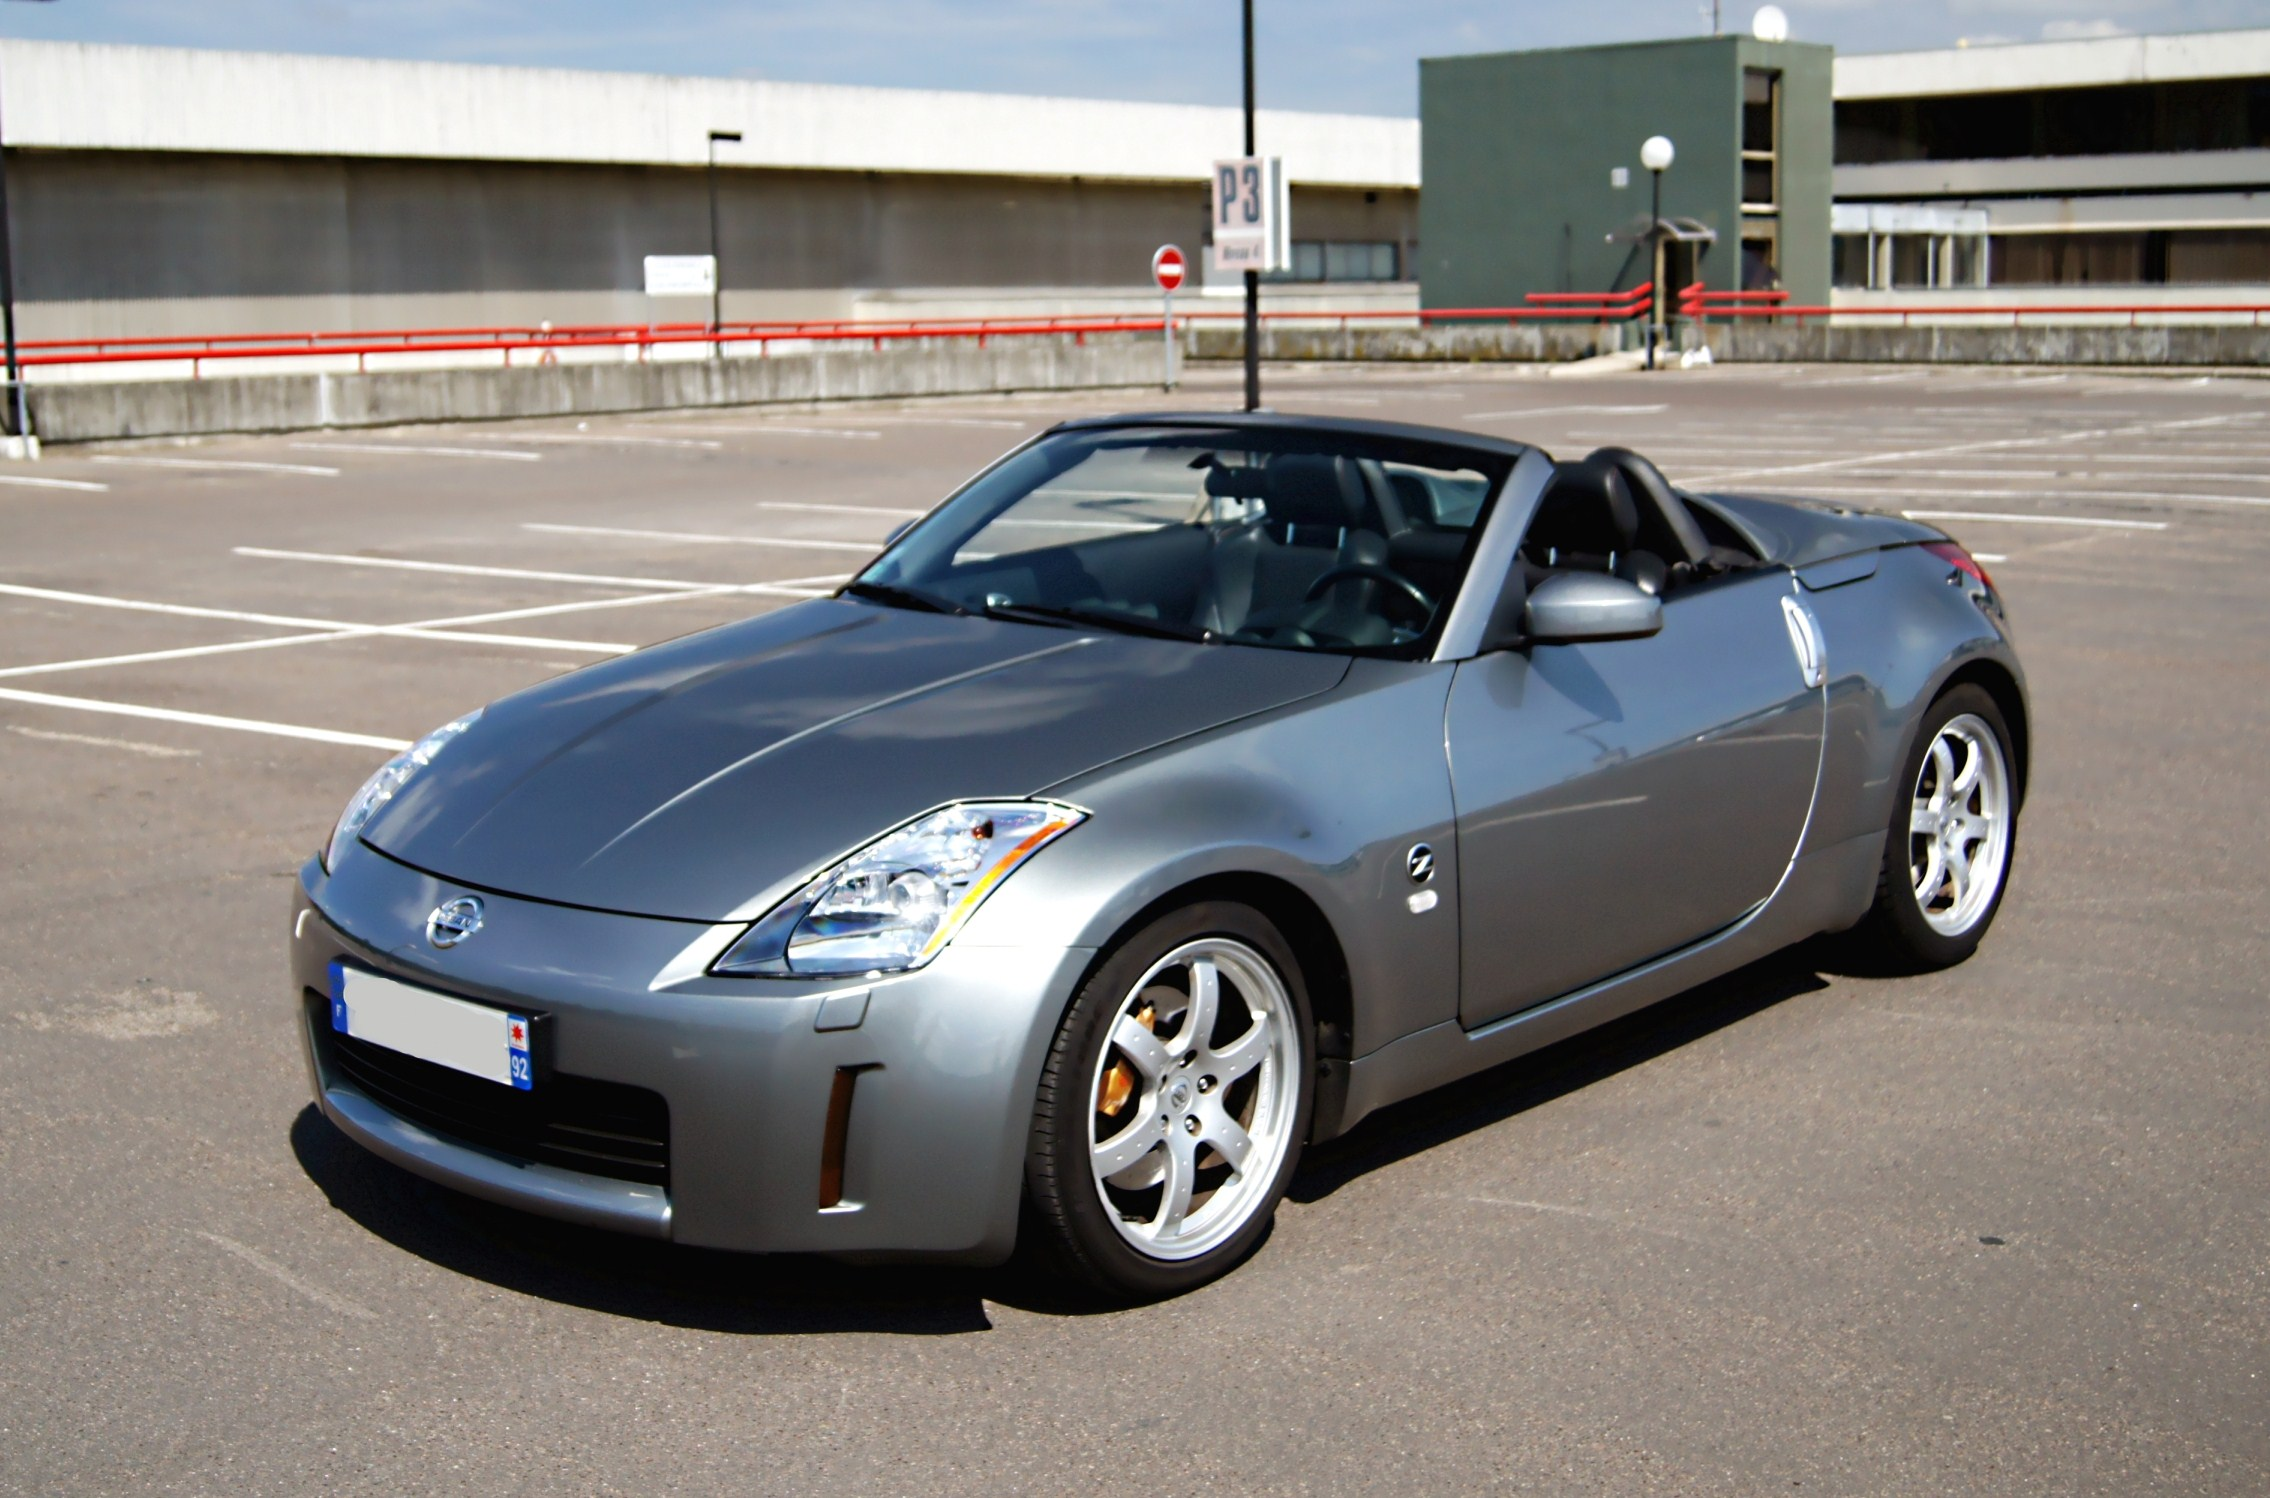 nissan 350z roadster pack 07 2005 54400 kms 14 500 vente voitures annonces auto et. Black Bedroom Furniture Sets. Home Design Ideas